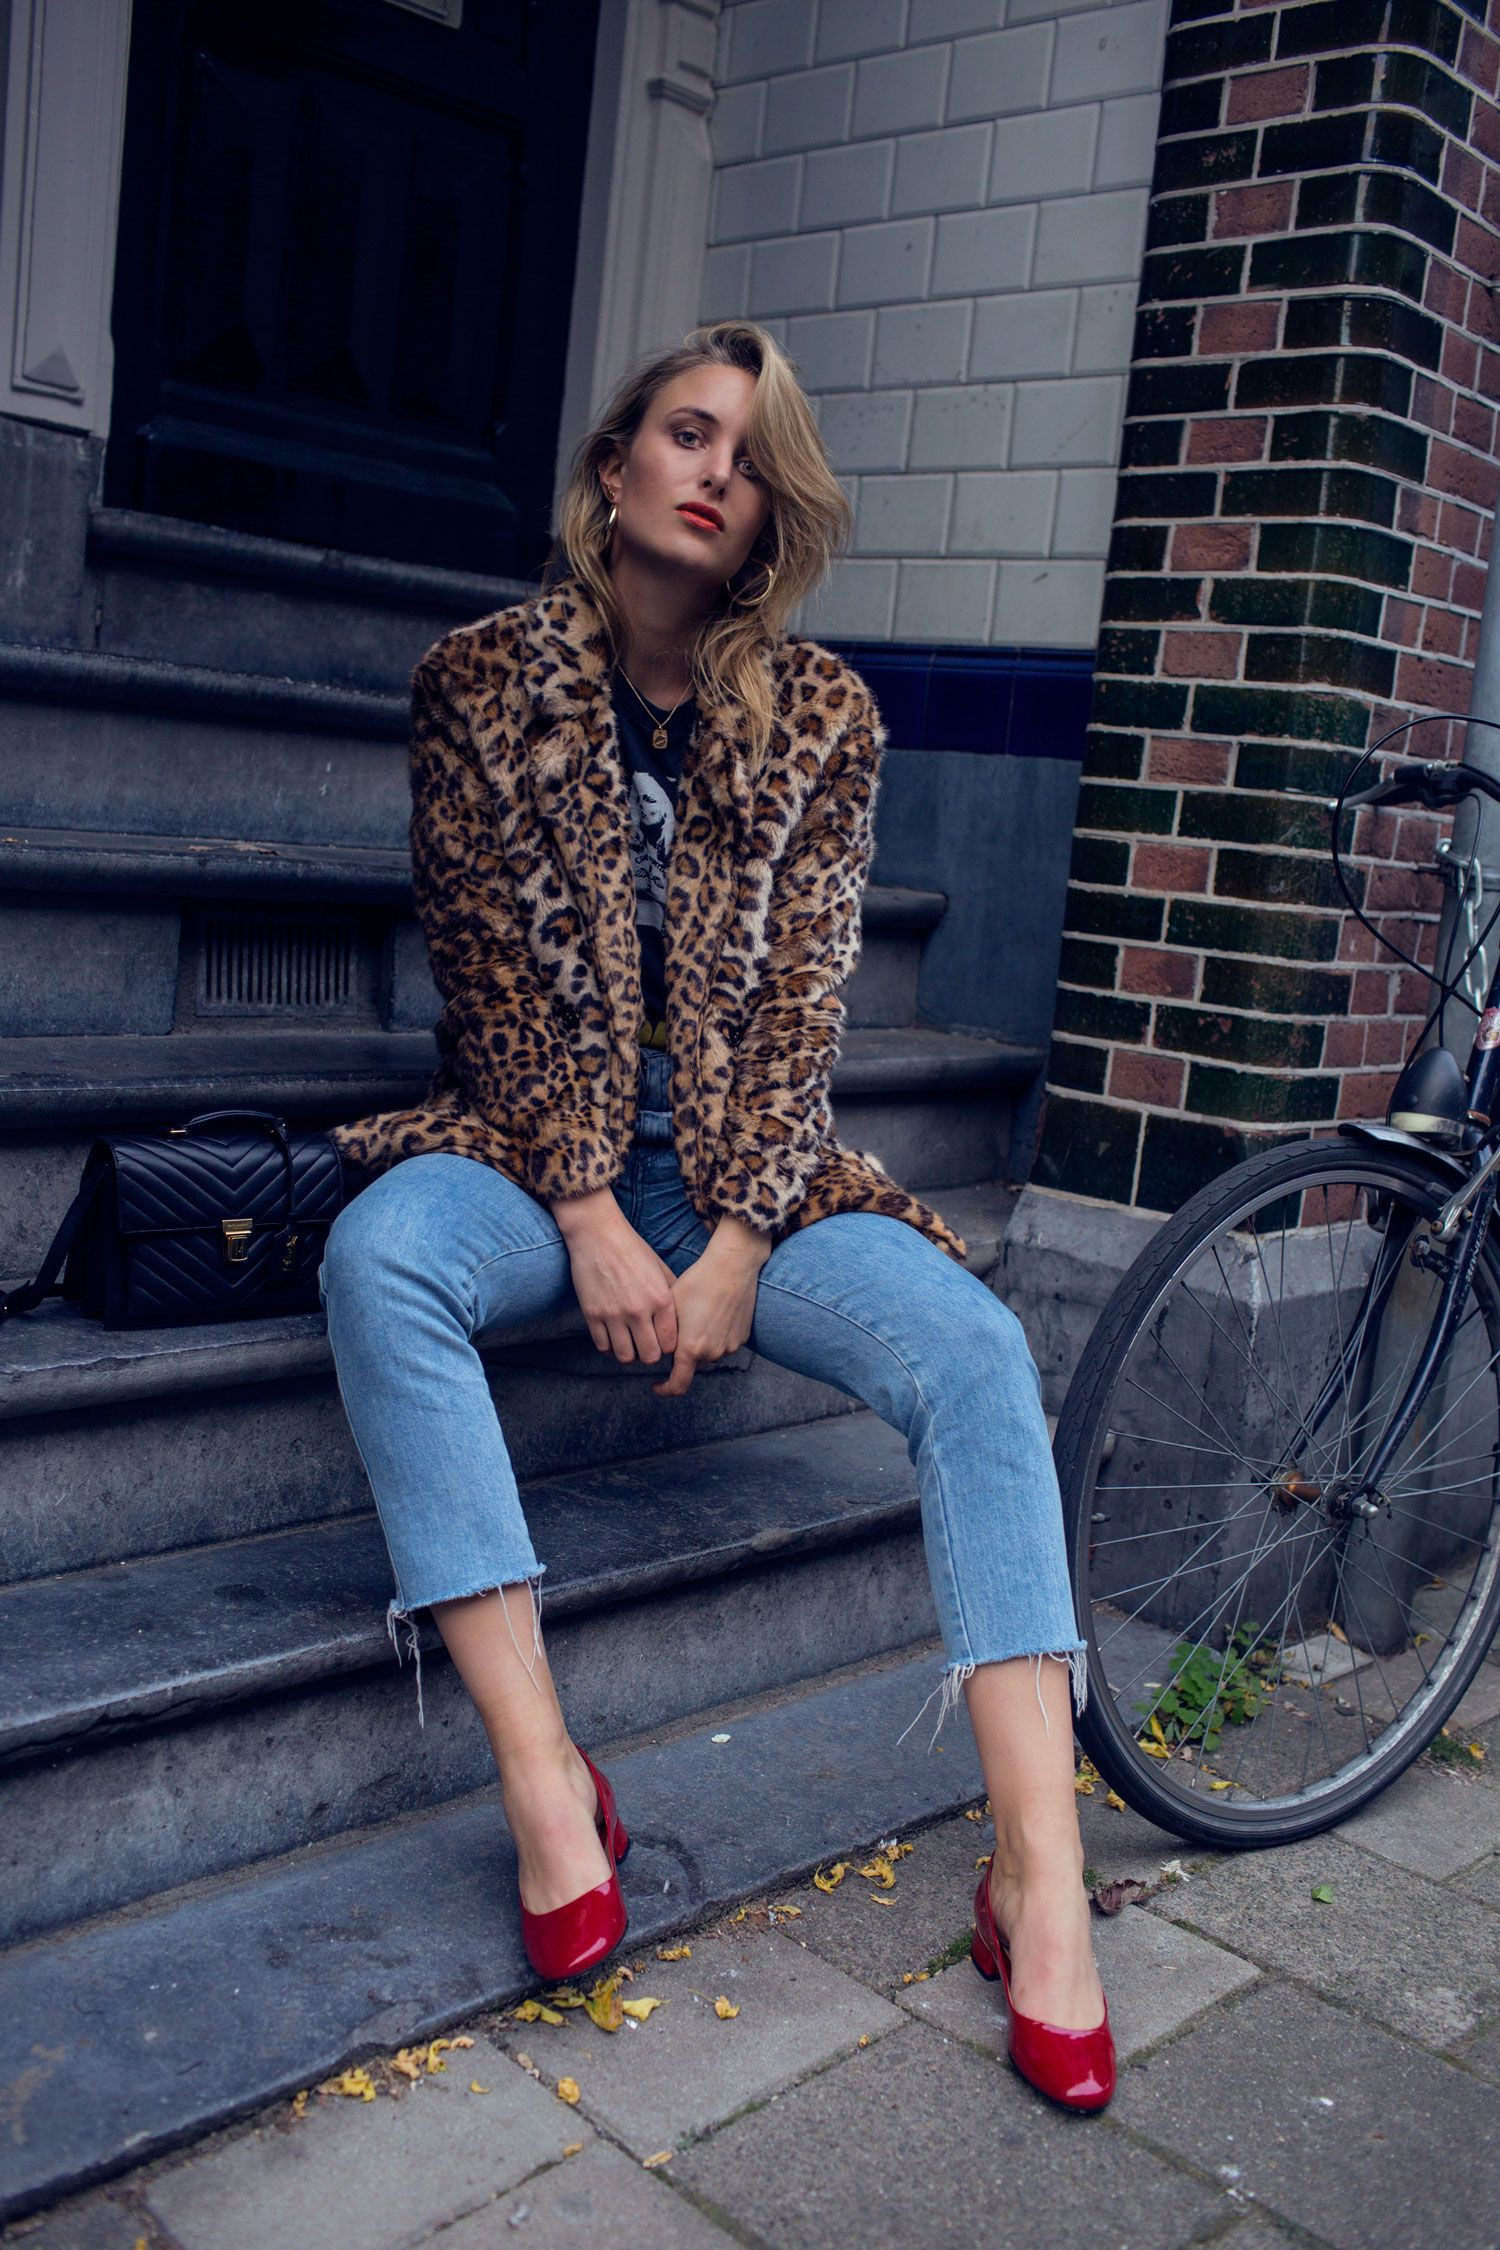 Leopard print and red shoes